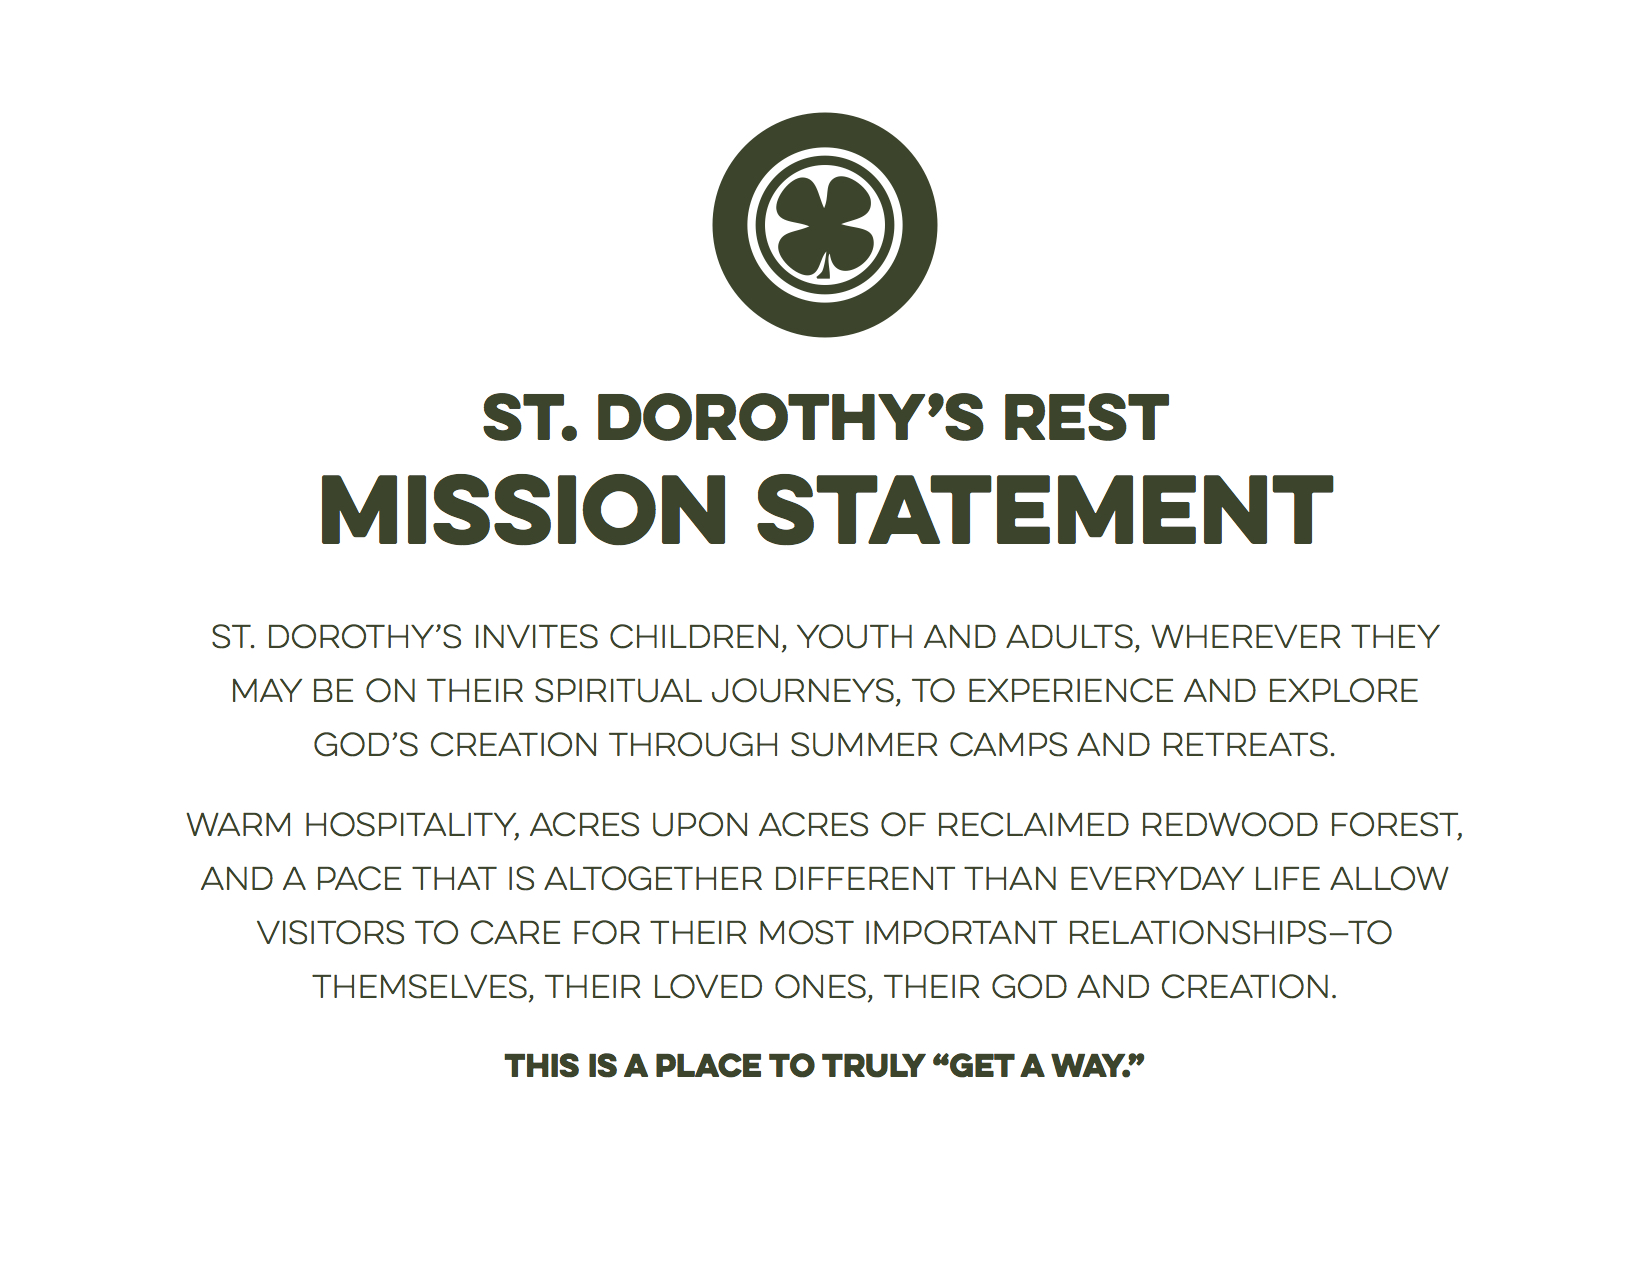 SDR Mission Statement